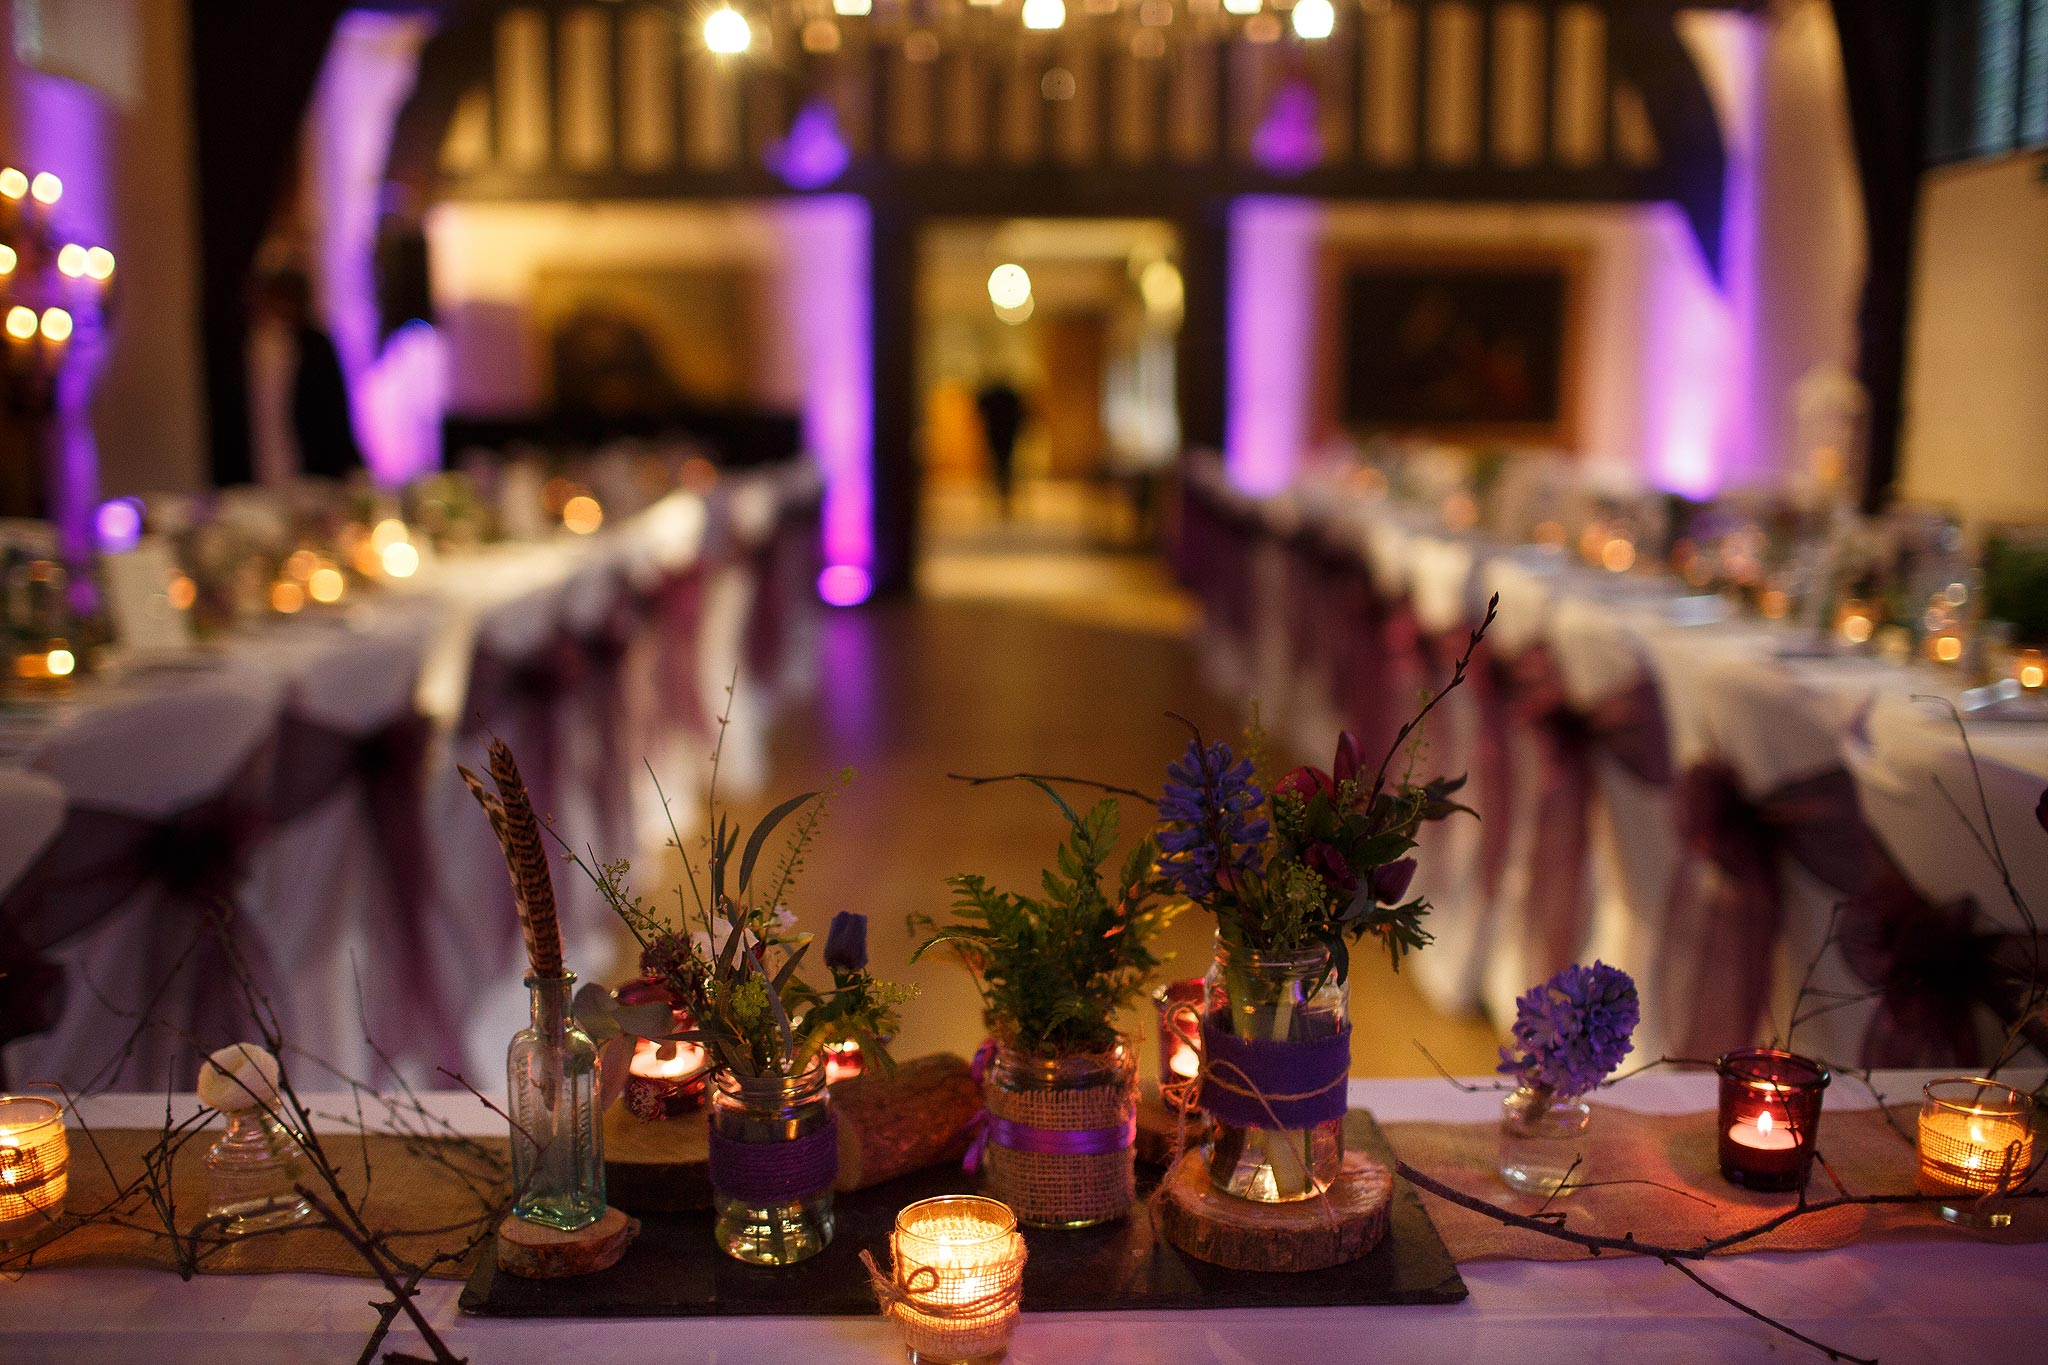 Photograph of the Great Hall all set up for dinner in the banqueting format.